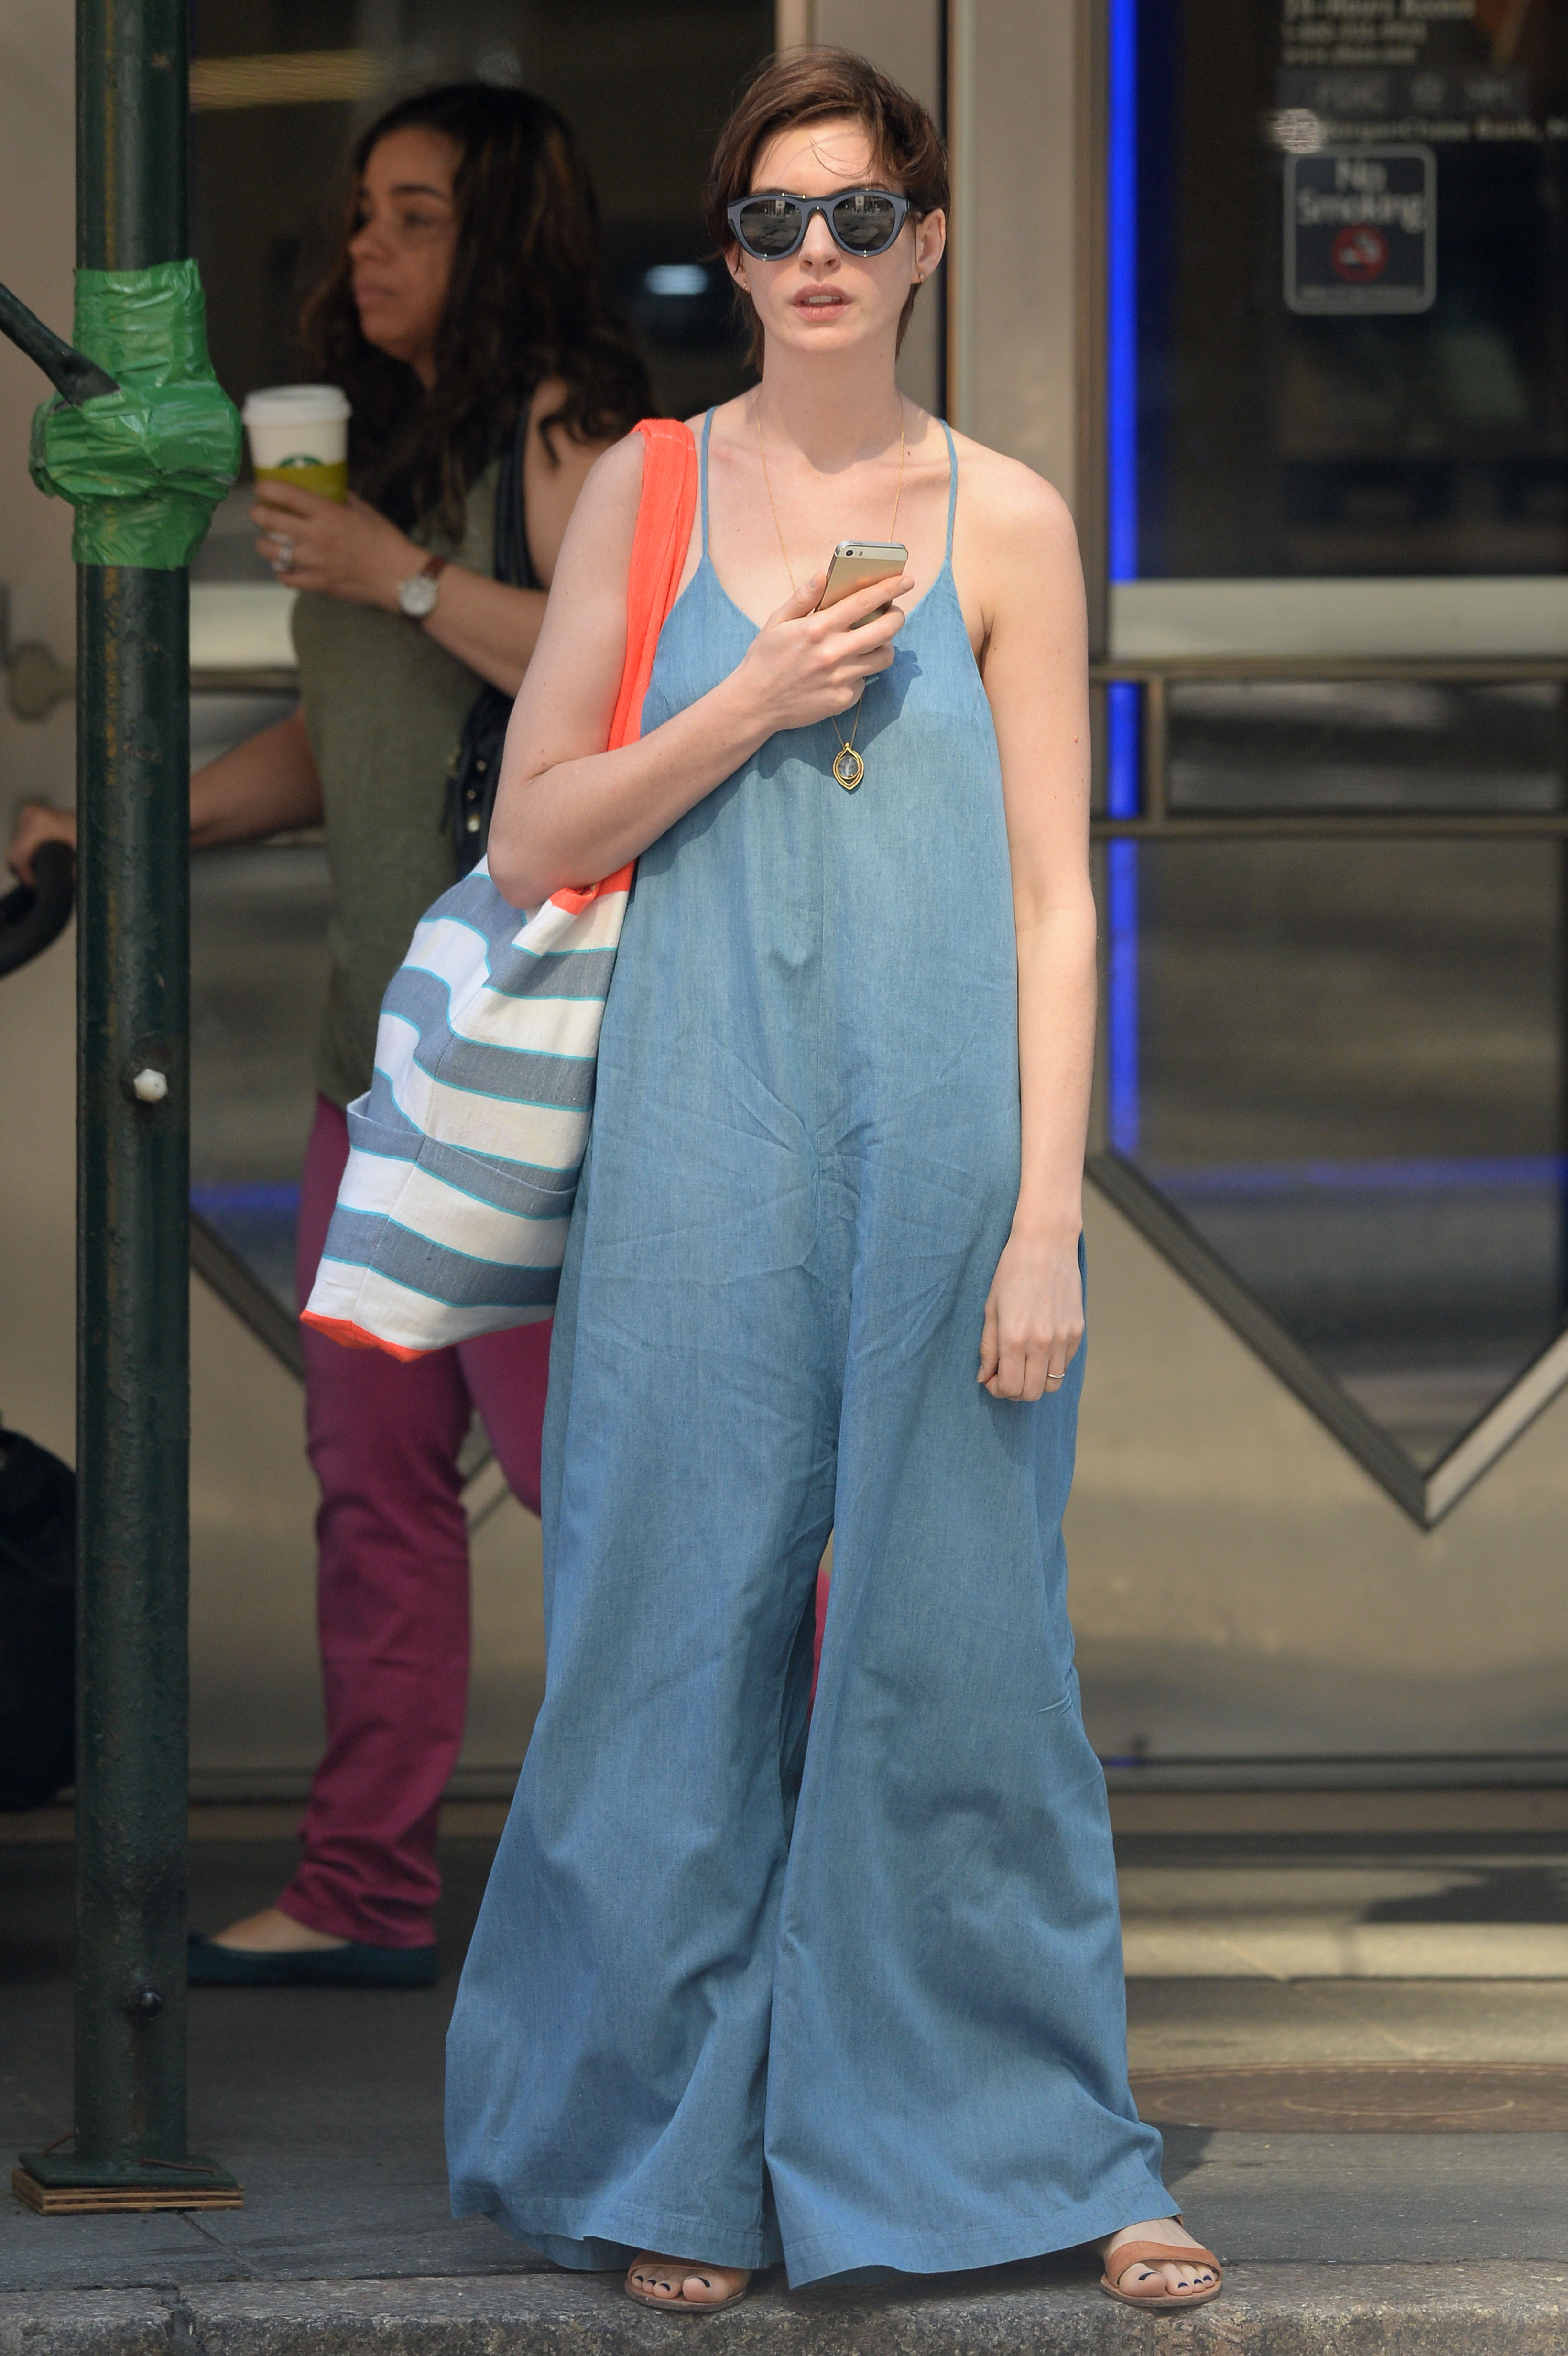 Anne Hathaway exits a taxi cab with a guitar and shopped at Duane Reade on 42nd Street in Manhattan